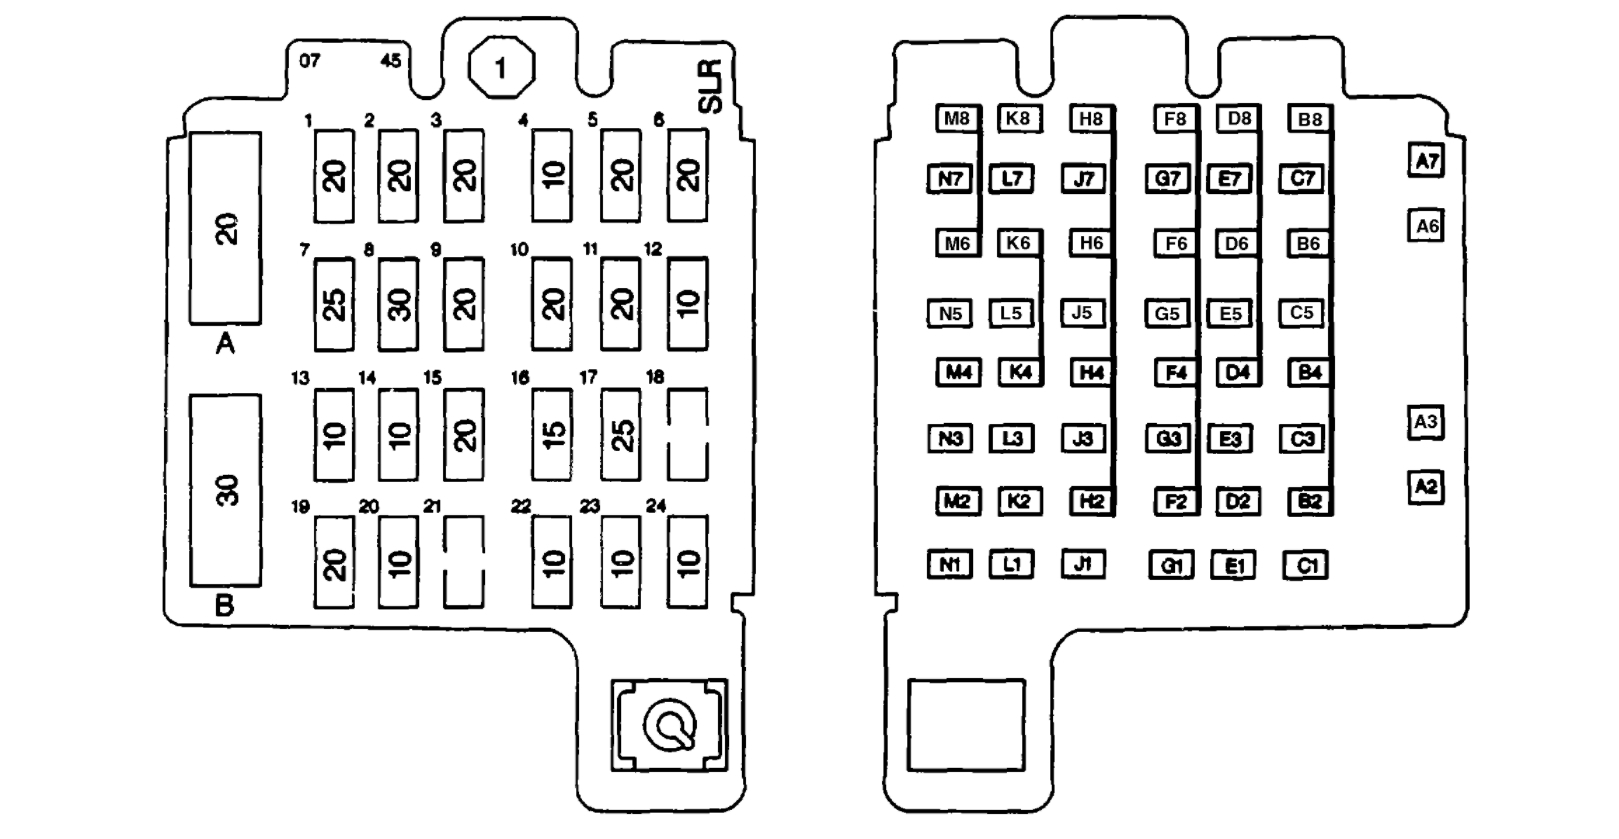 Fuse Box Diagram Needed Can You Help Me With The Fuse Box